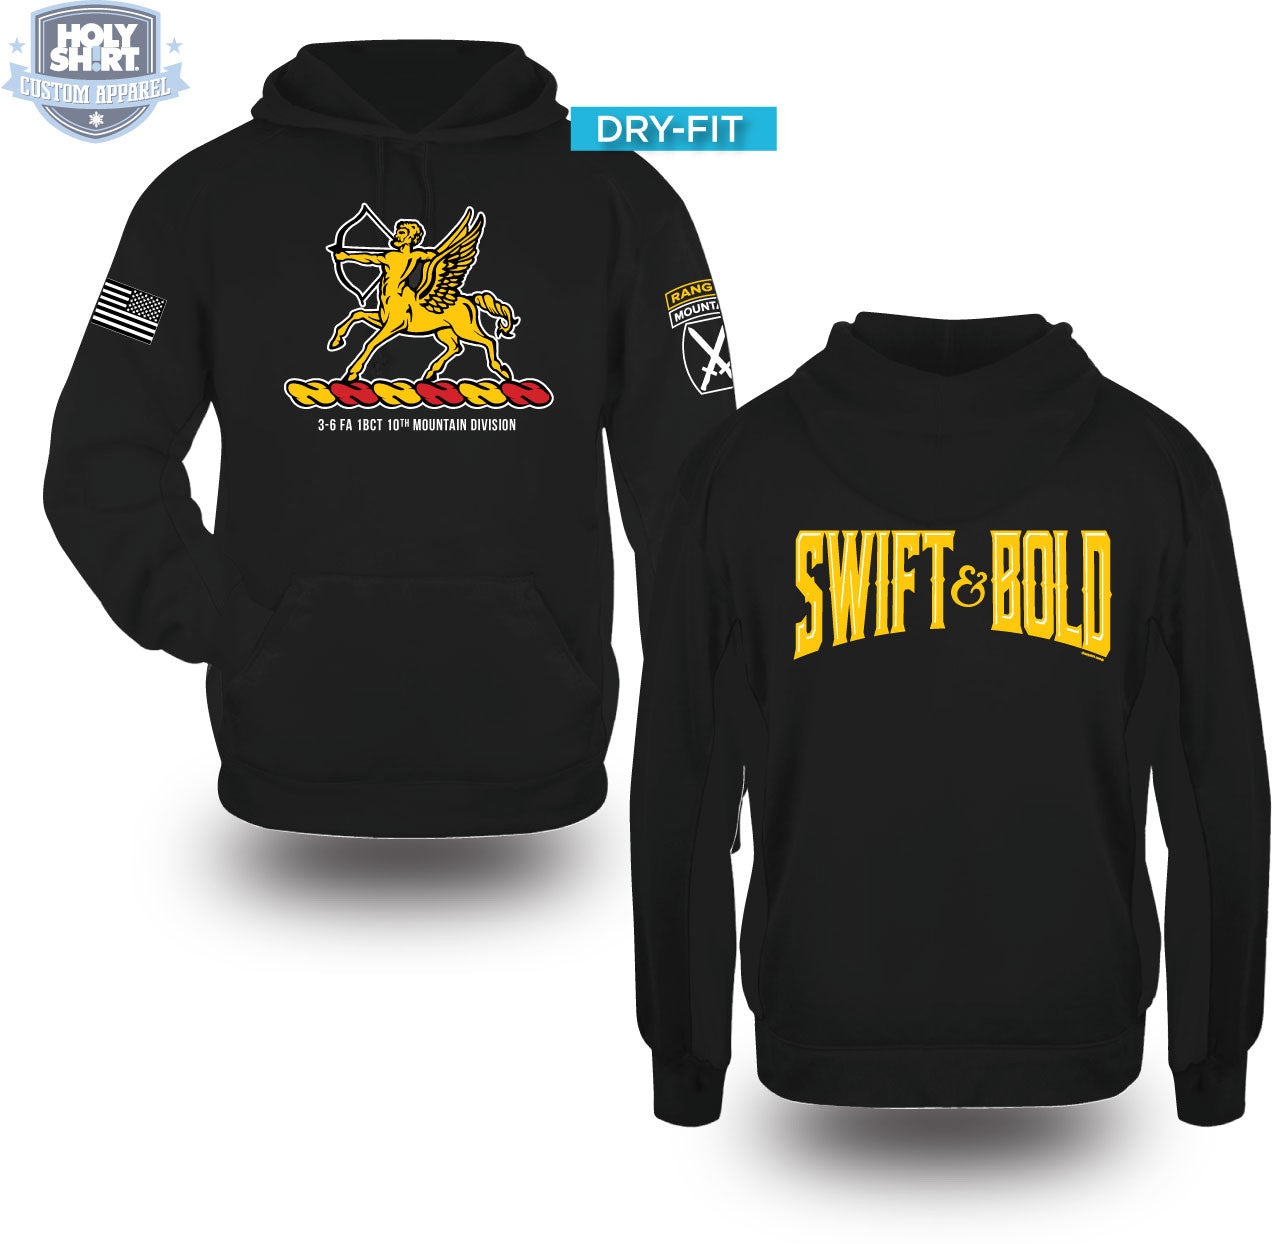 DRY-FIT Pullover Hoodies